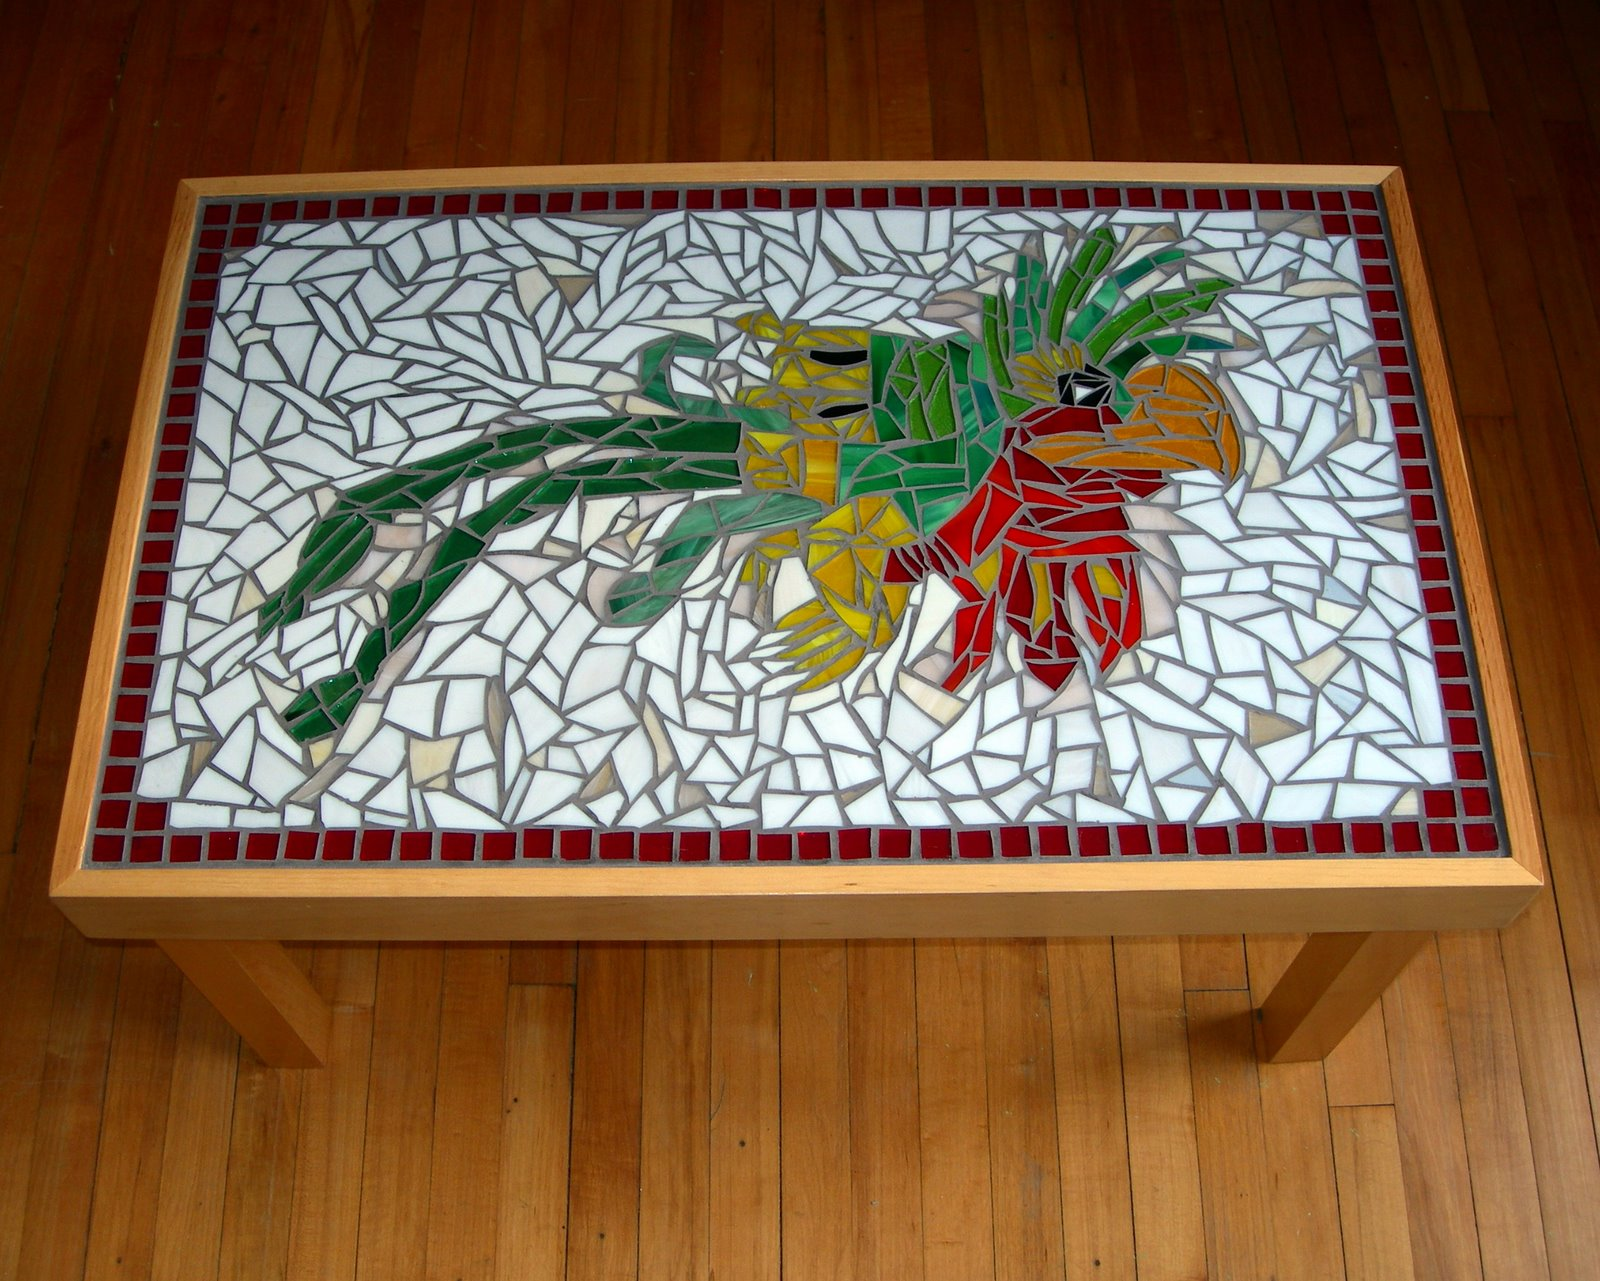 After Varnishing The Wooden Top I Went To Work On Mosaic And Many Hours Later Voila Had A Lovely Mosaicked Table